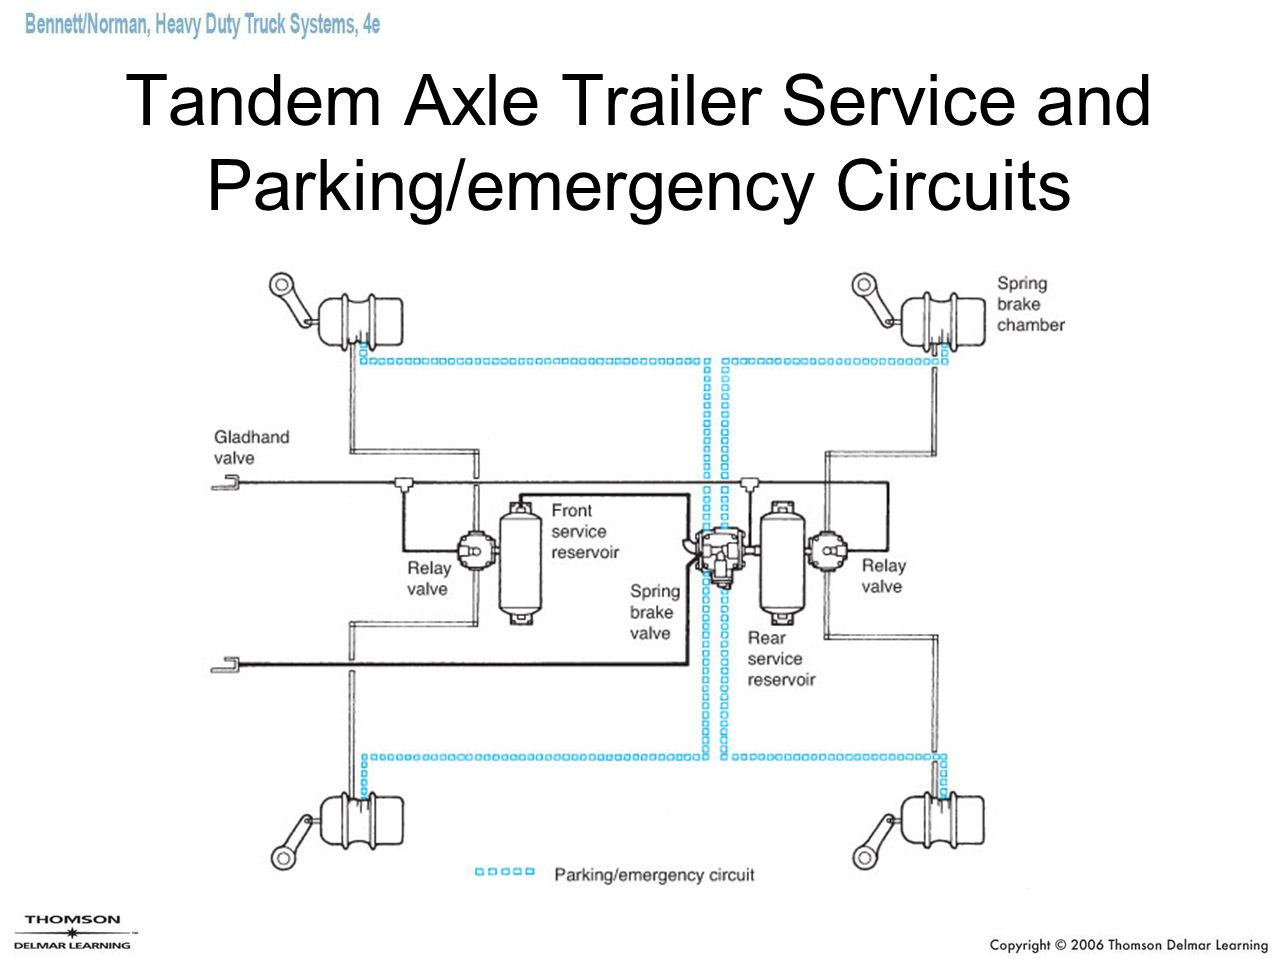 Chapter 28 Truck Brake Systems Ppt Video Online Download Wiring Diagram For Tandem Axle Trailer 26 Service And Parking Emergency Circuits